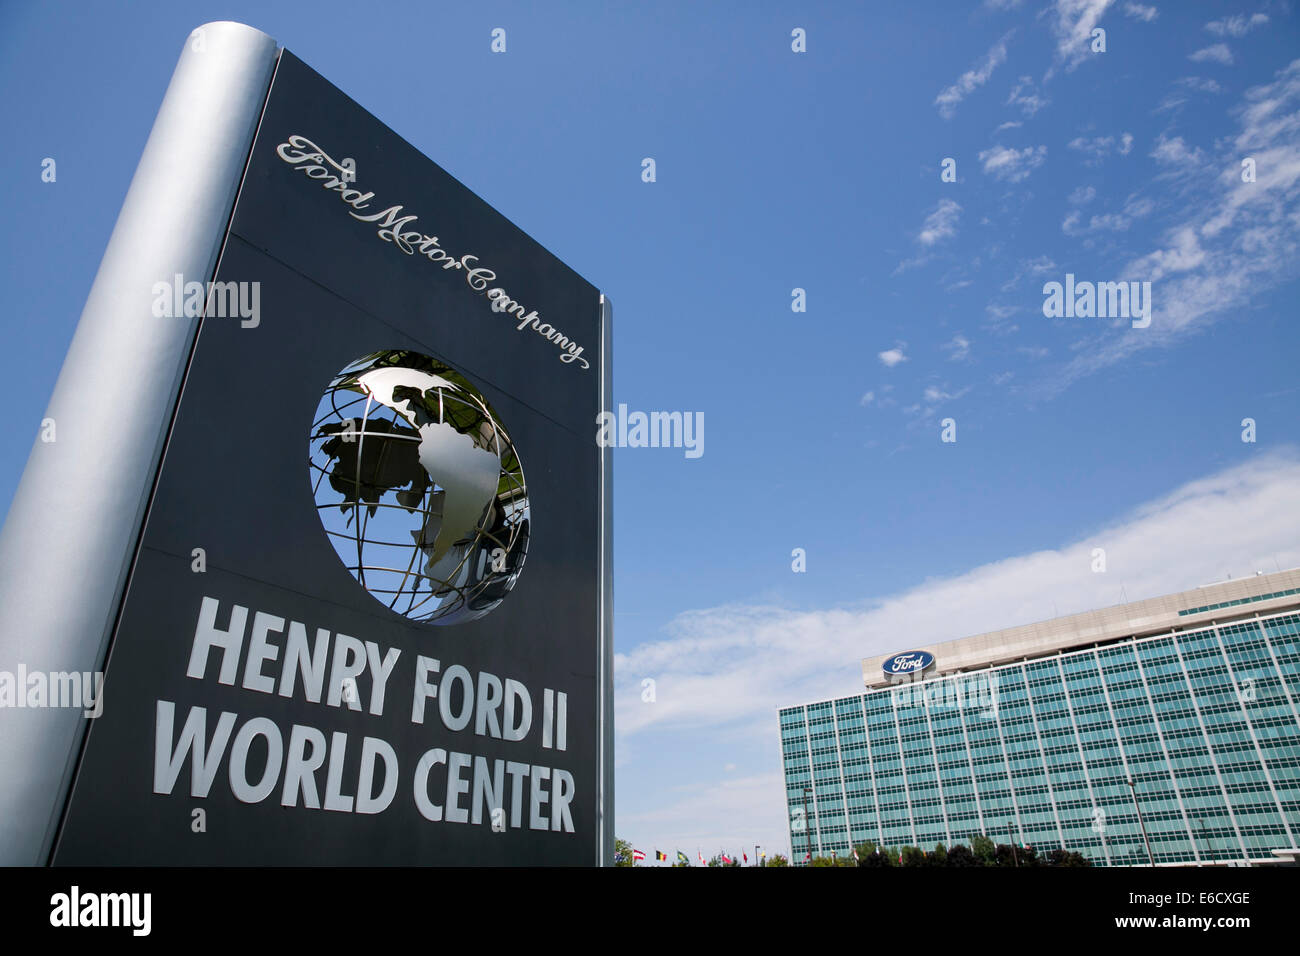 Der Sitz der Ford Motor Company in Dearborn, Michigan. Stockfoto